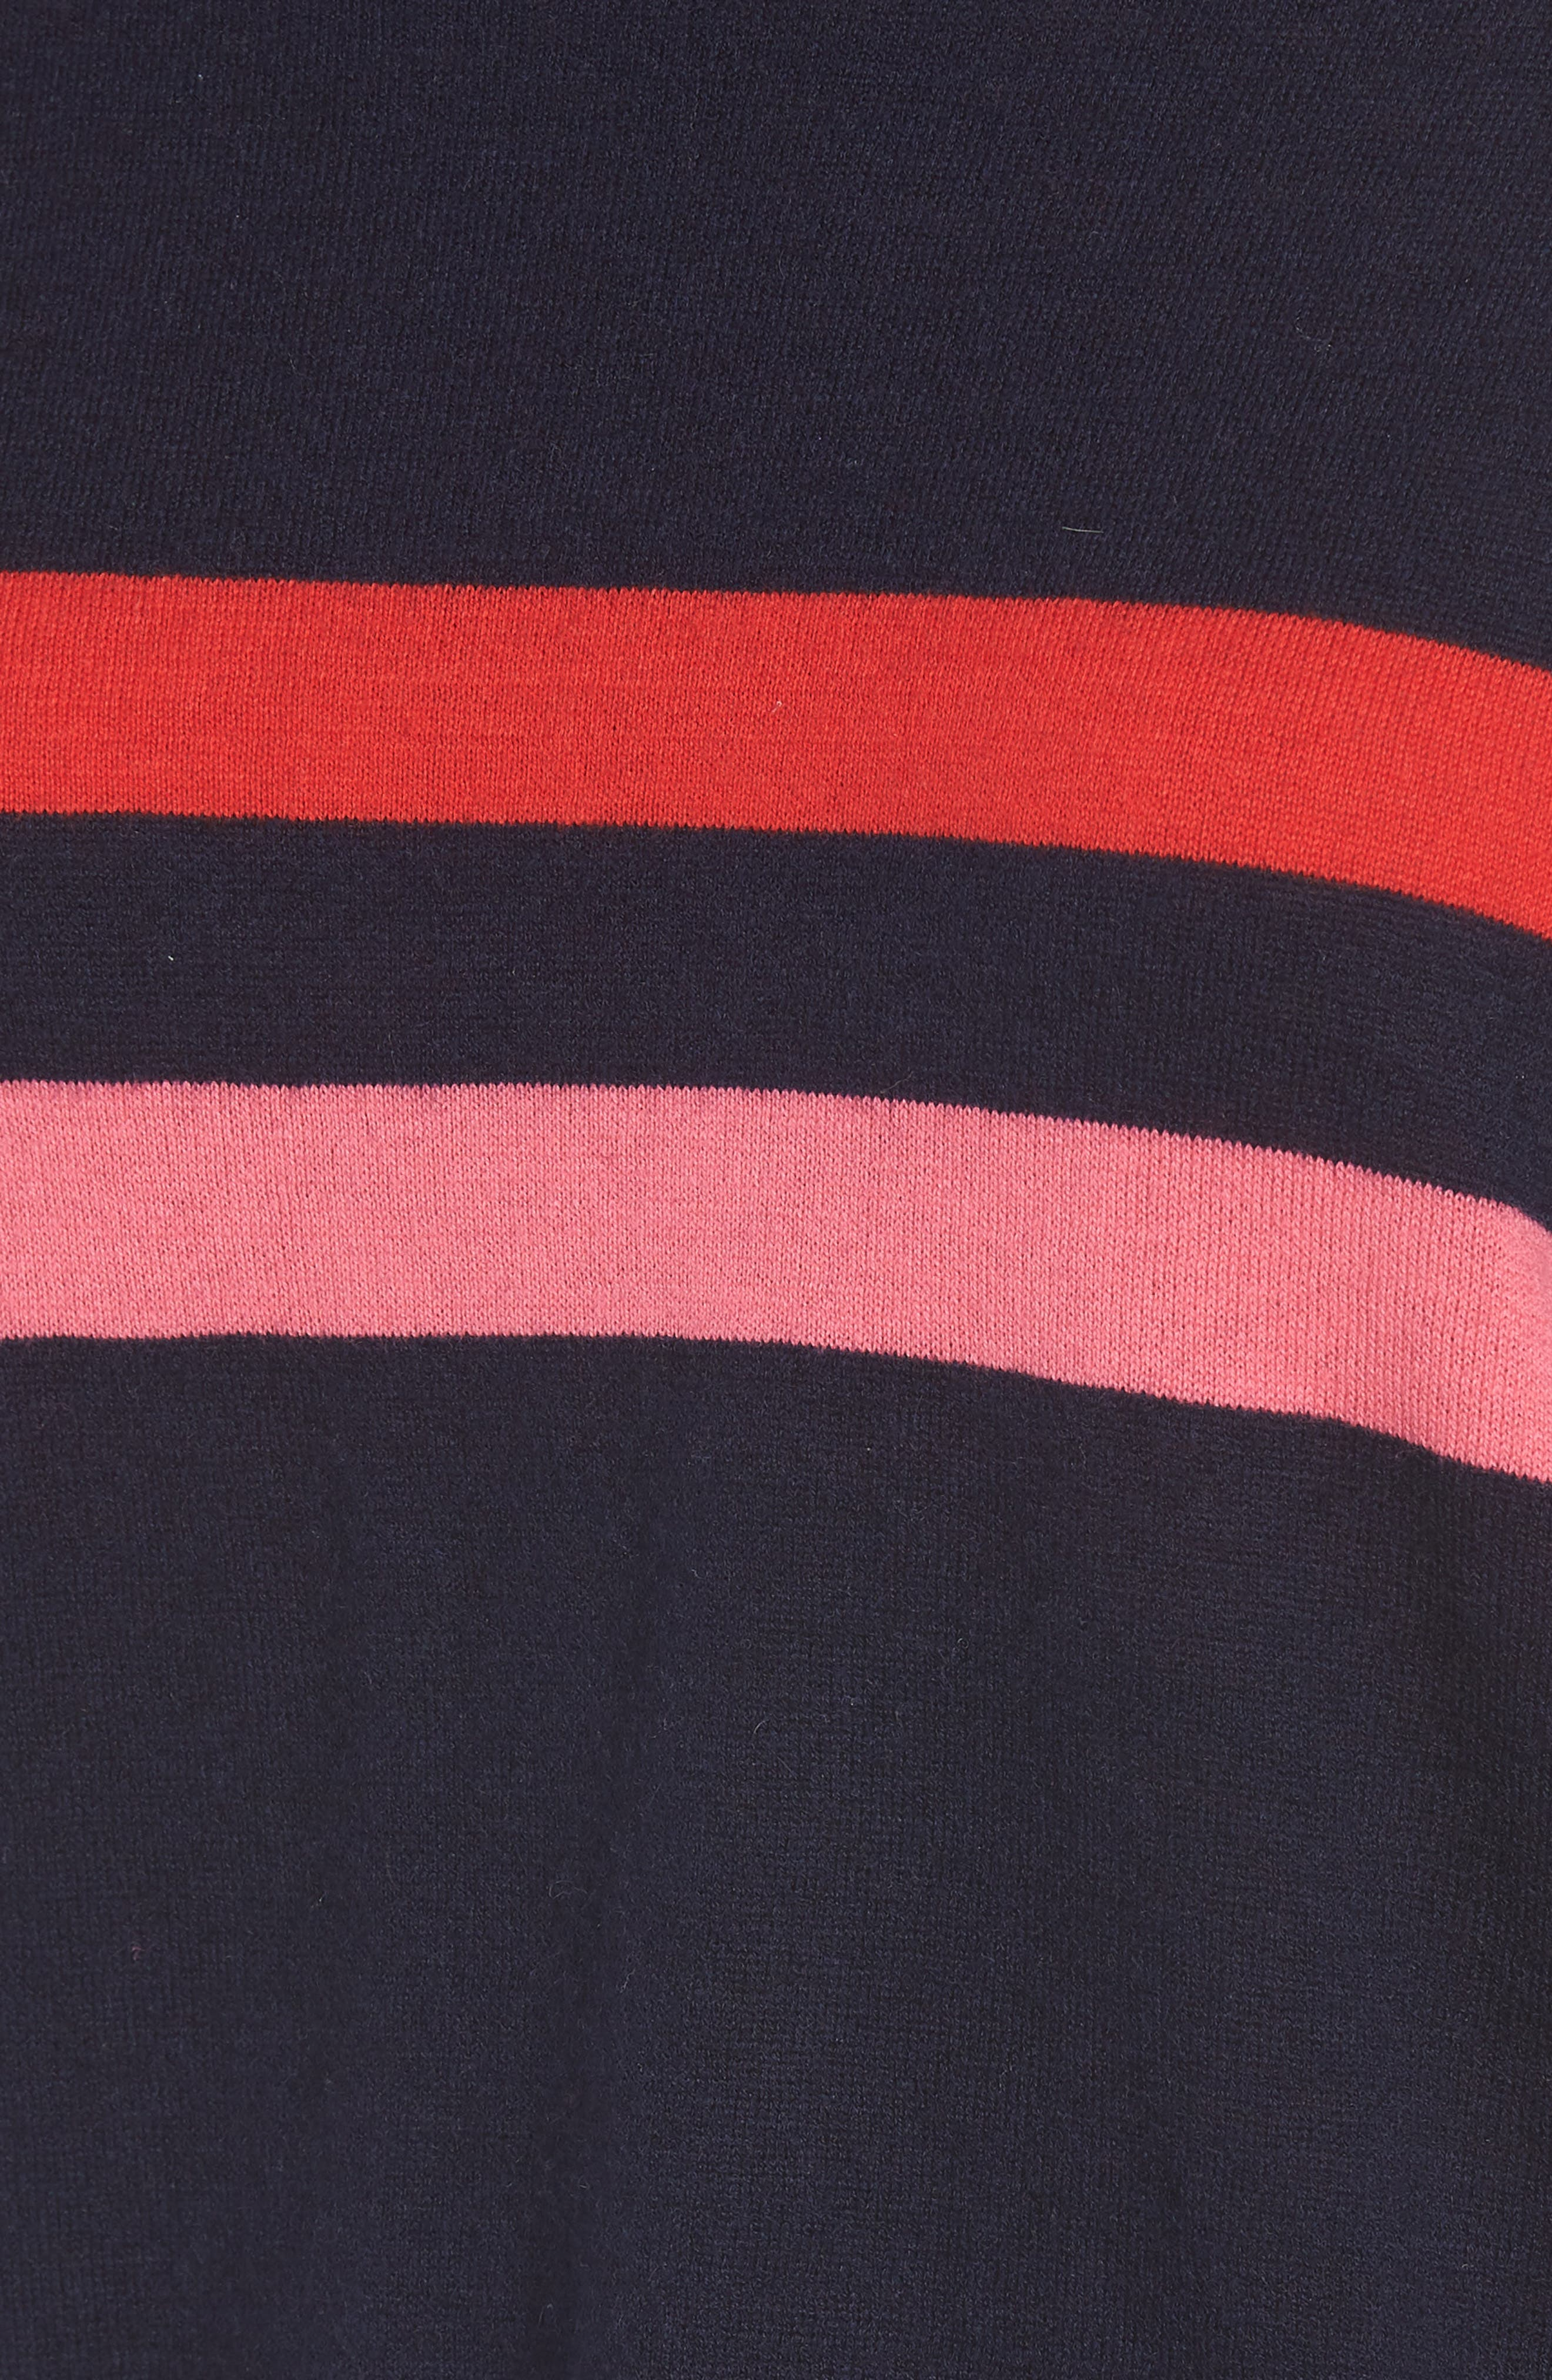 Stripe Wool & Cashmere Sweater,                             Alternate thumbnail 6, color,                             Navy